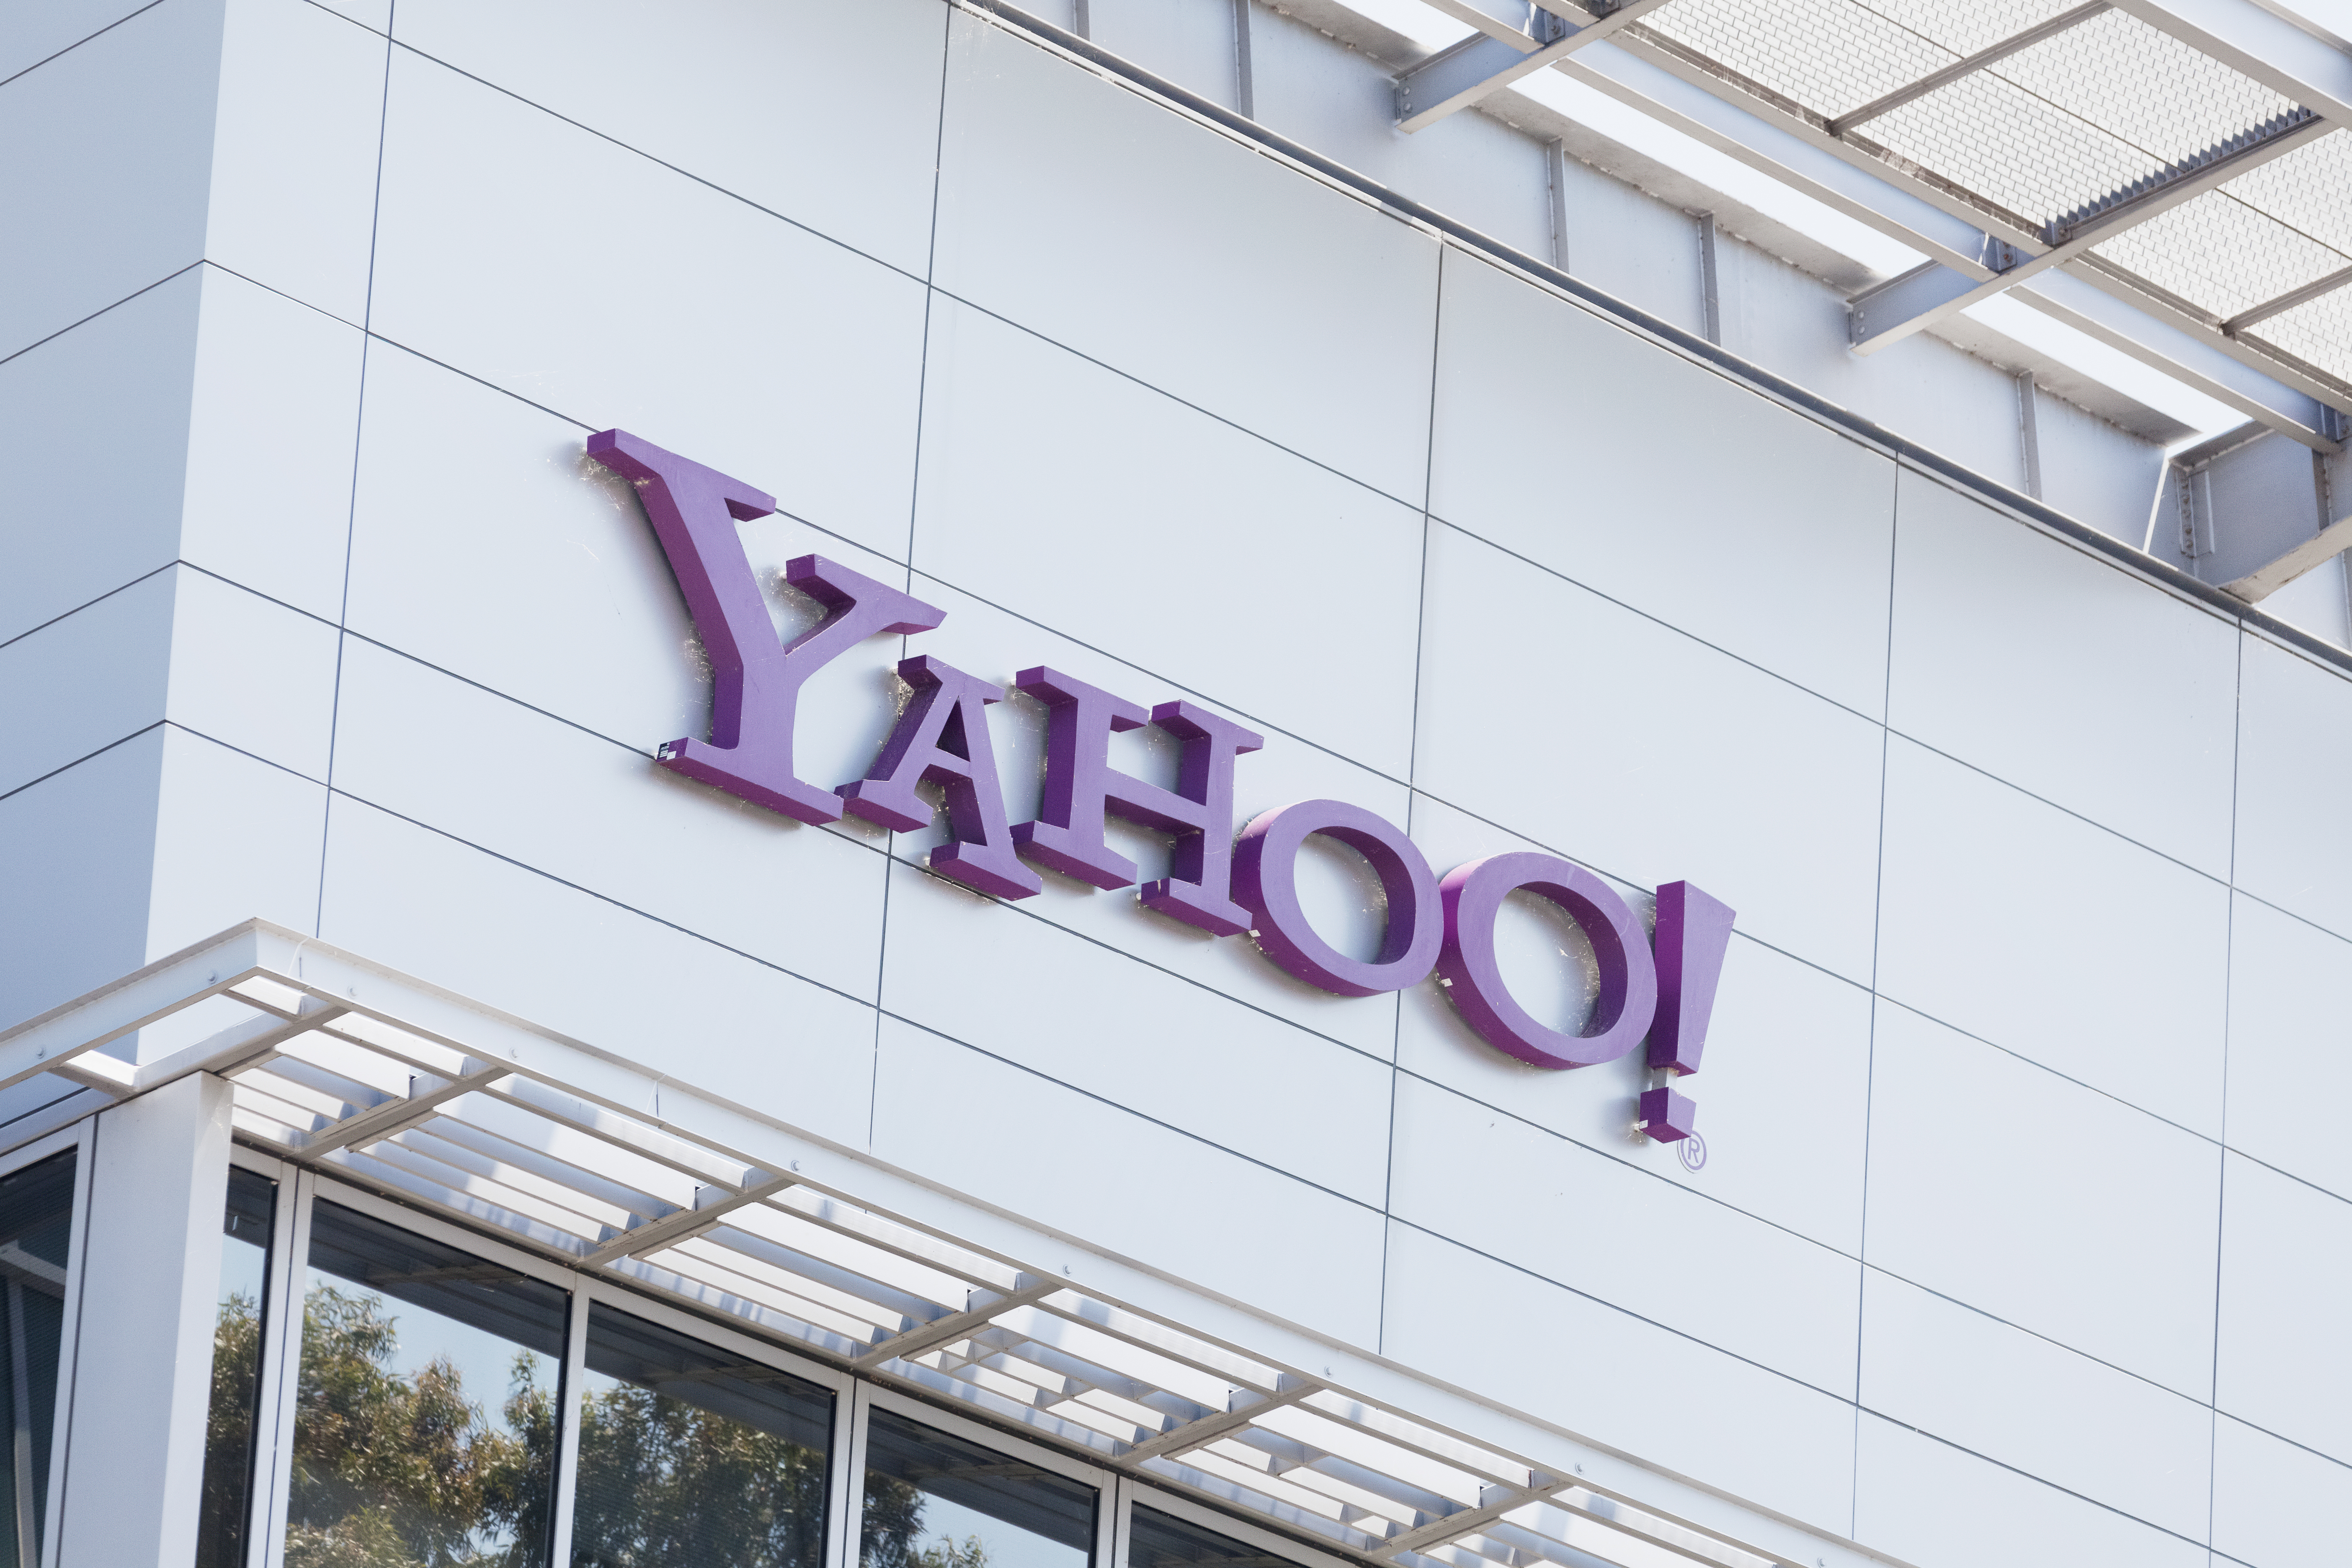 Yahoo Answers is shutting down on May 4th | Engadget